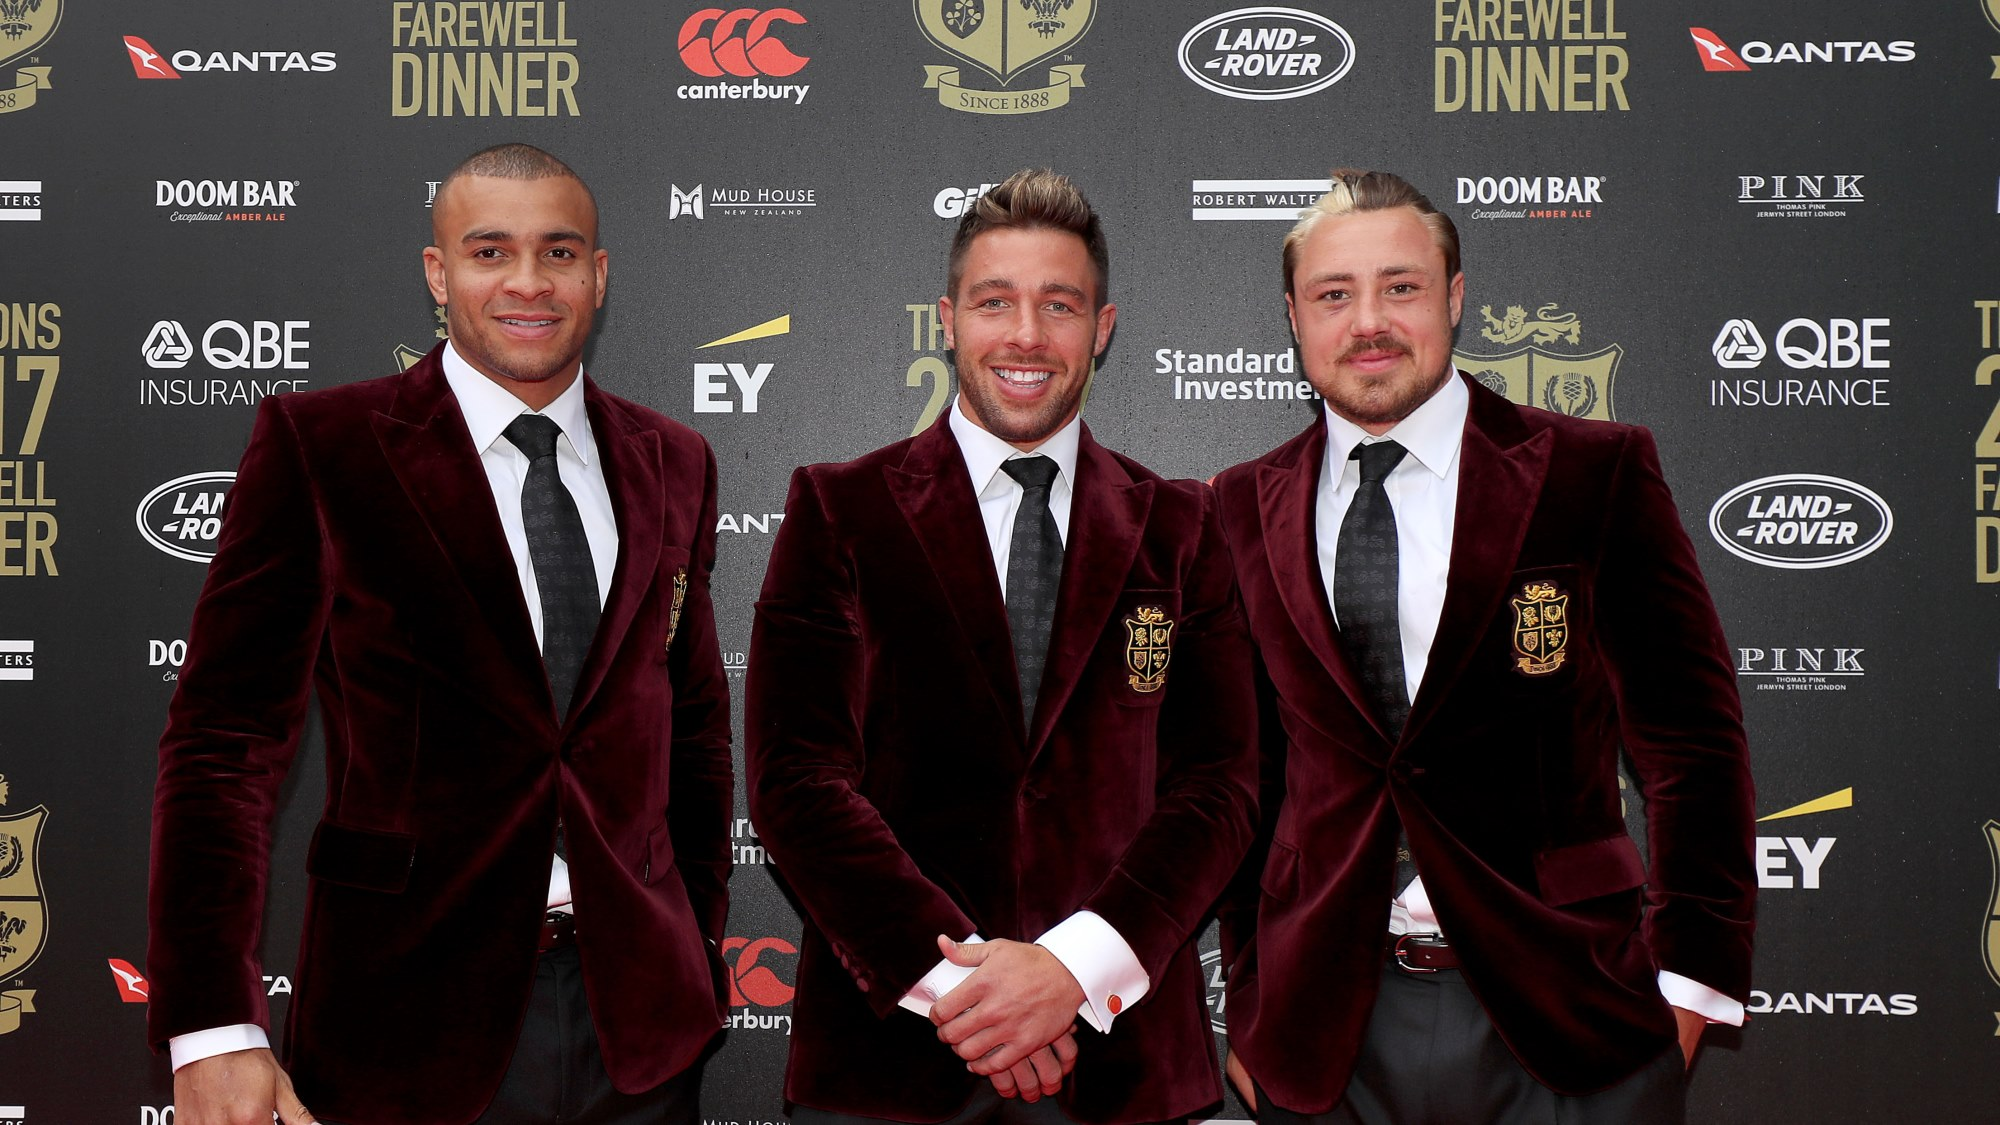 2017 Squad enjoy Farewell Dinner in London